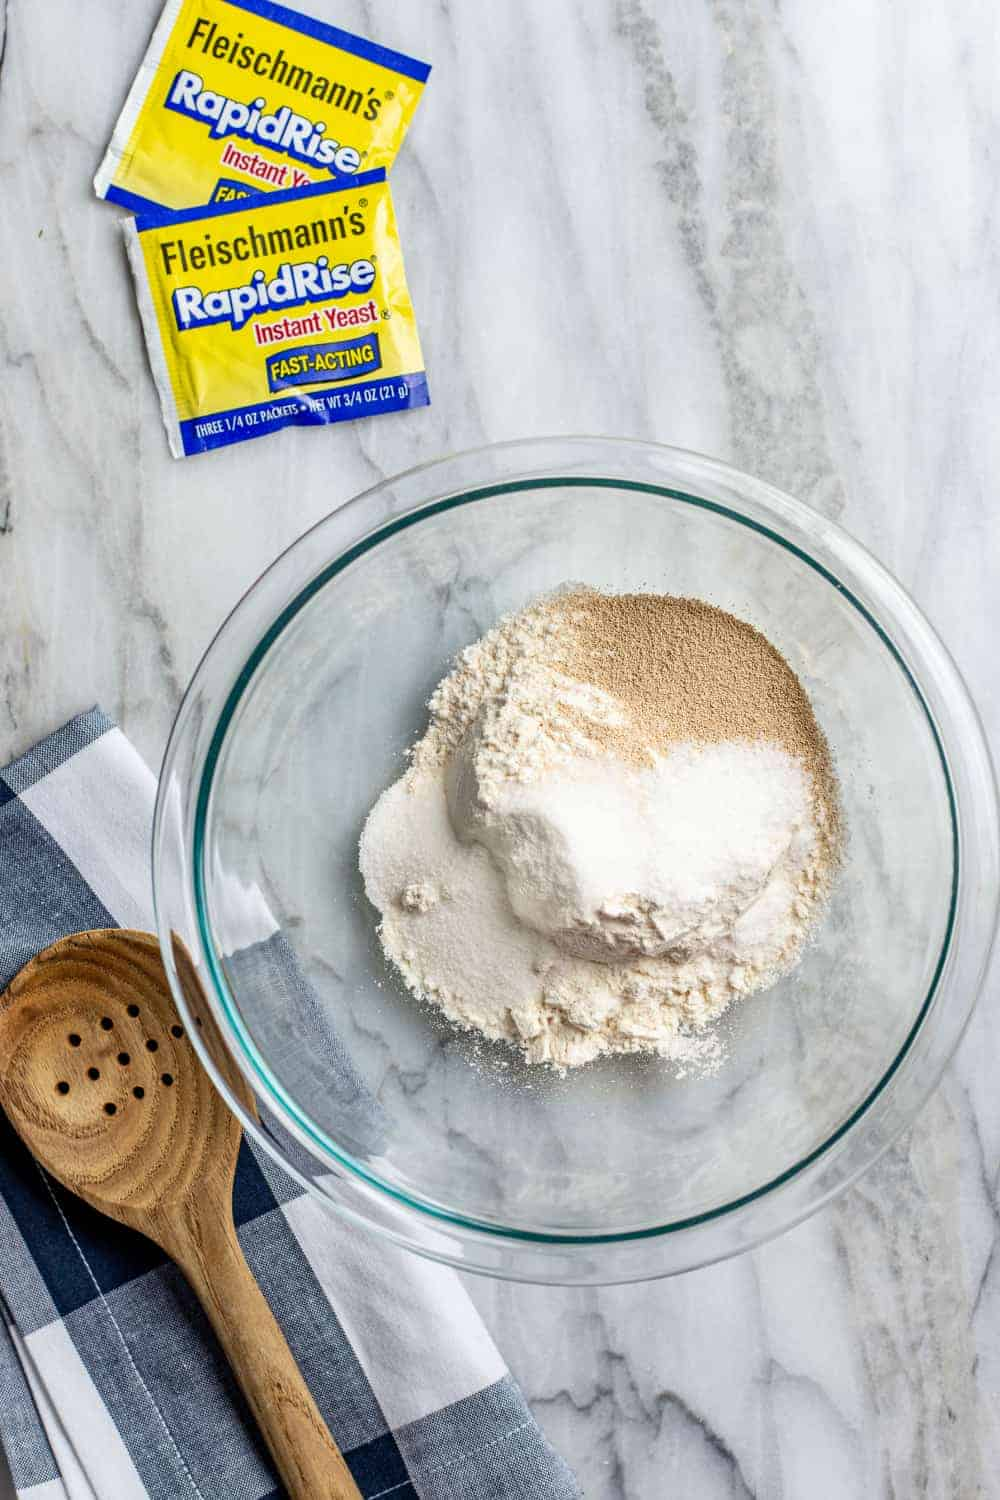 Dry ingredients for 30 minute pizza crust in a glass mixing bowl on a marble surface